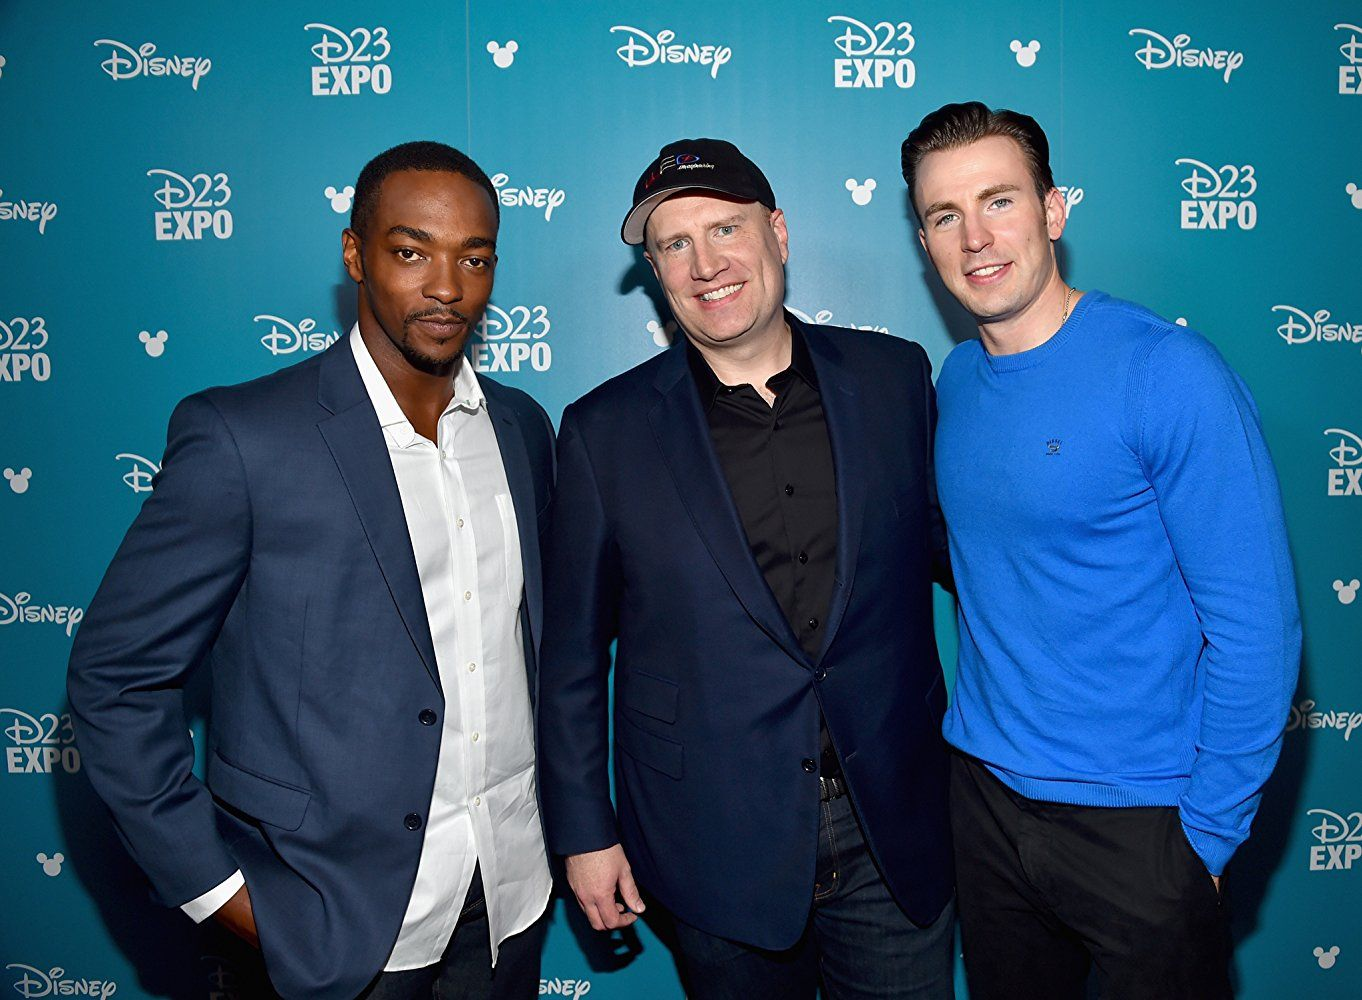 The new and OG Captain America with Kevin Feige.